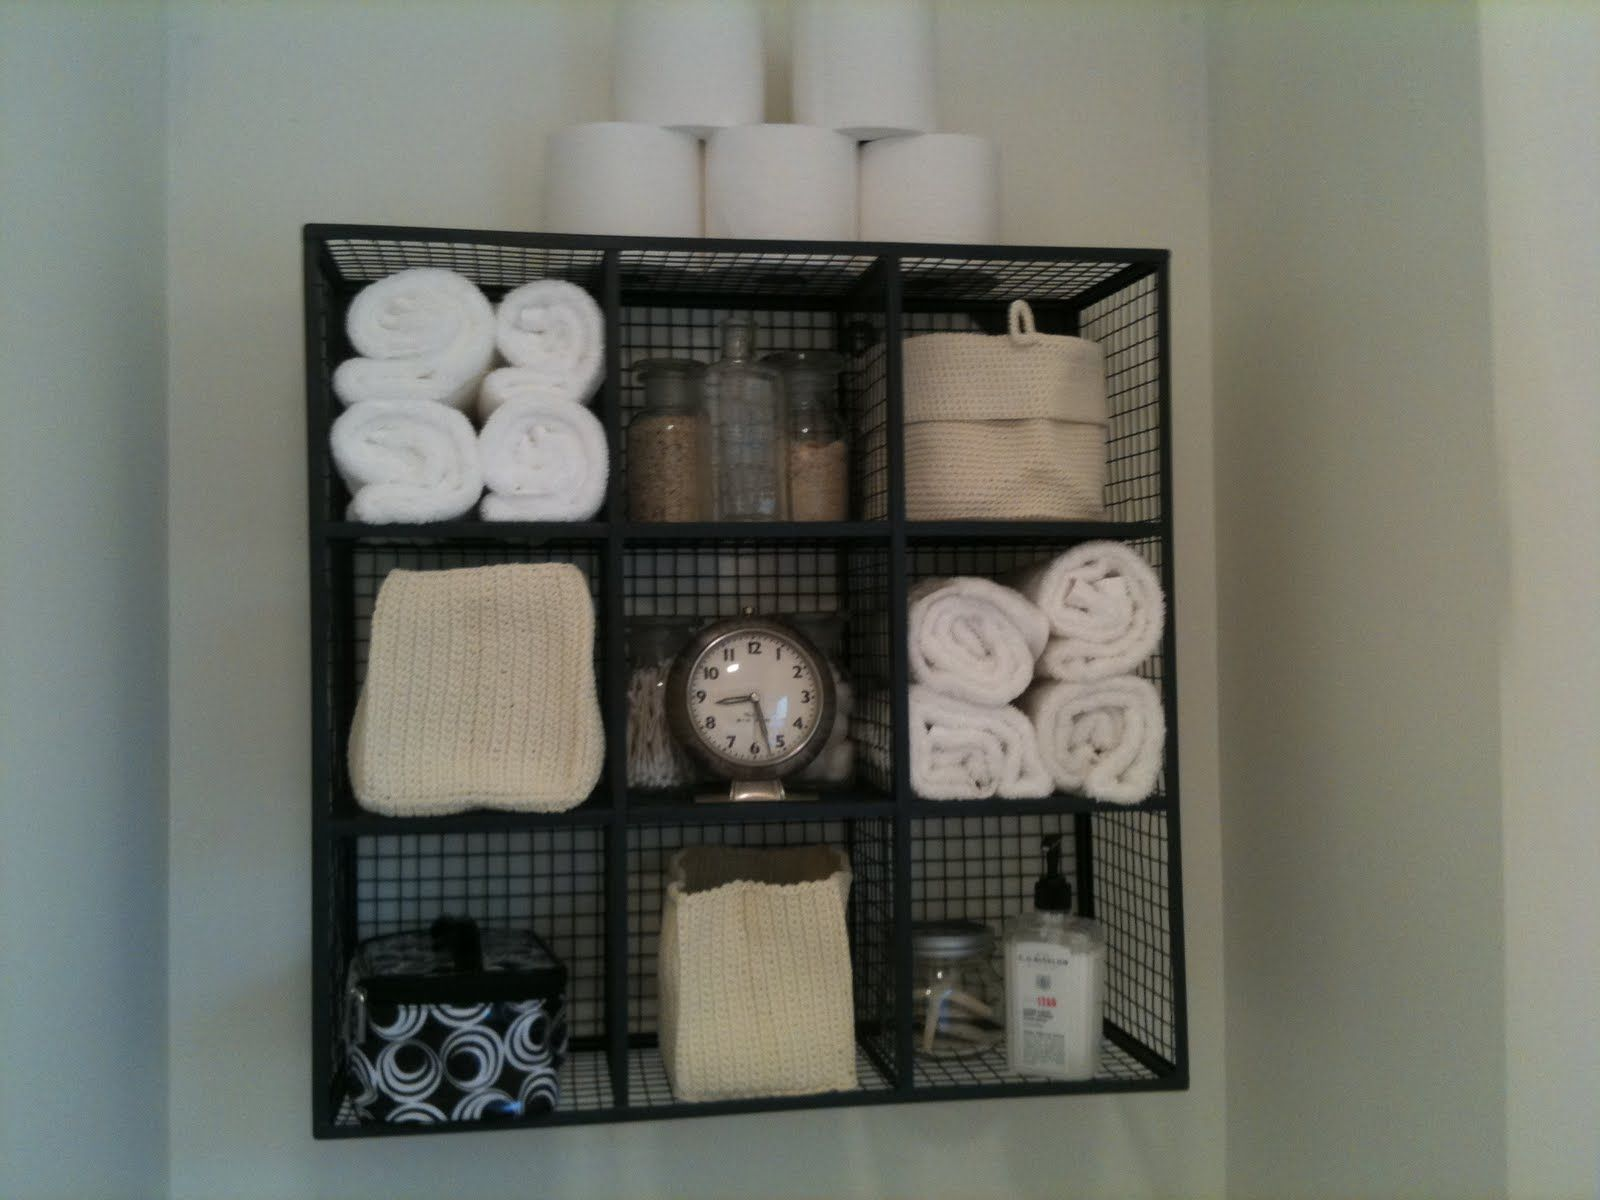 17 Brilliant Over The Toilet Storage Ideas Toilet: over the toilet design ideas